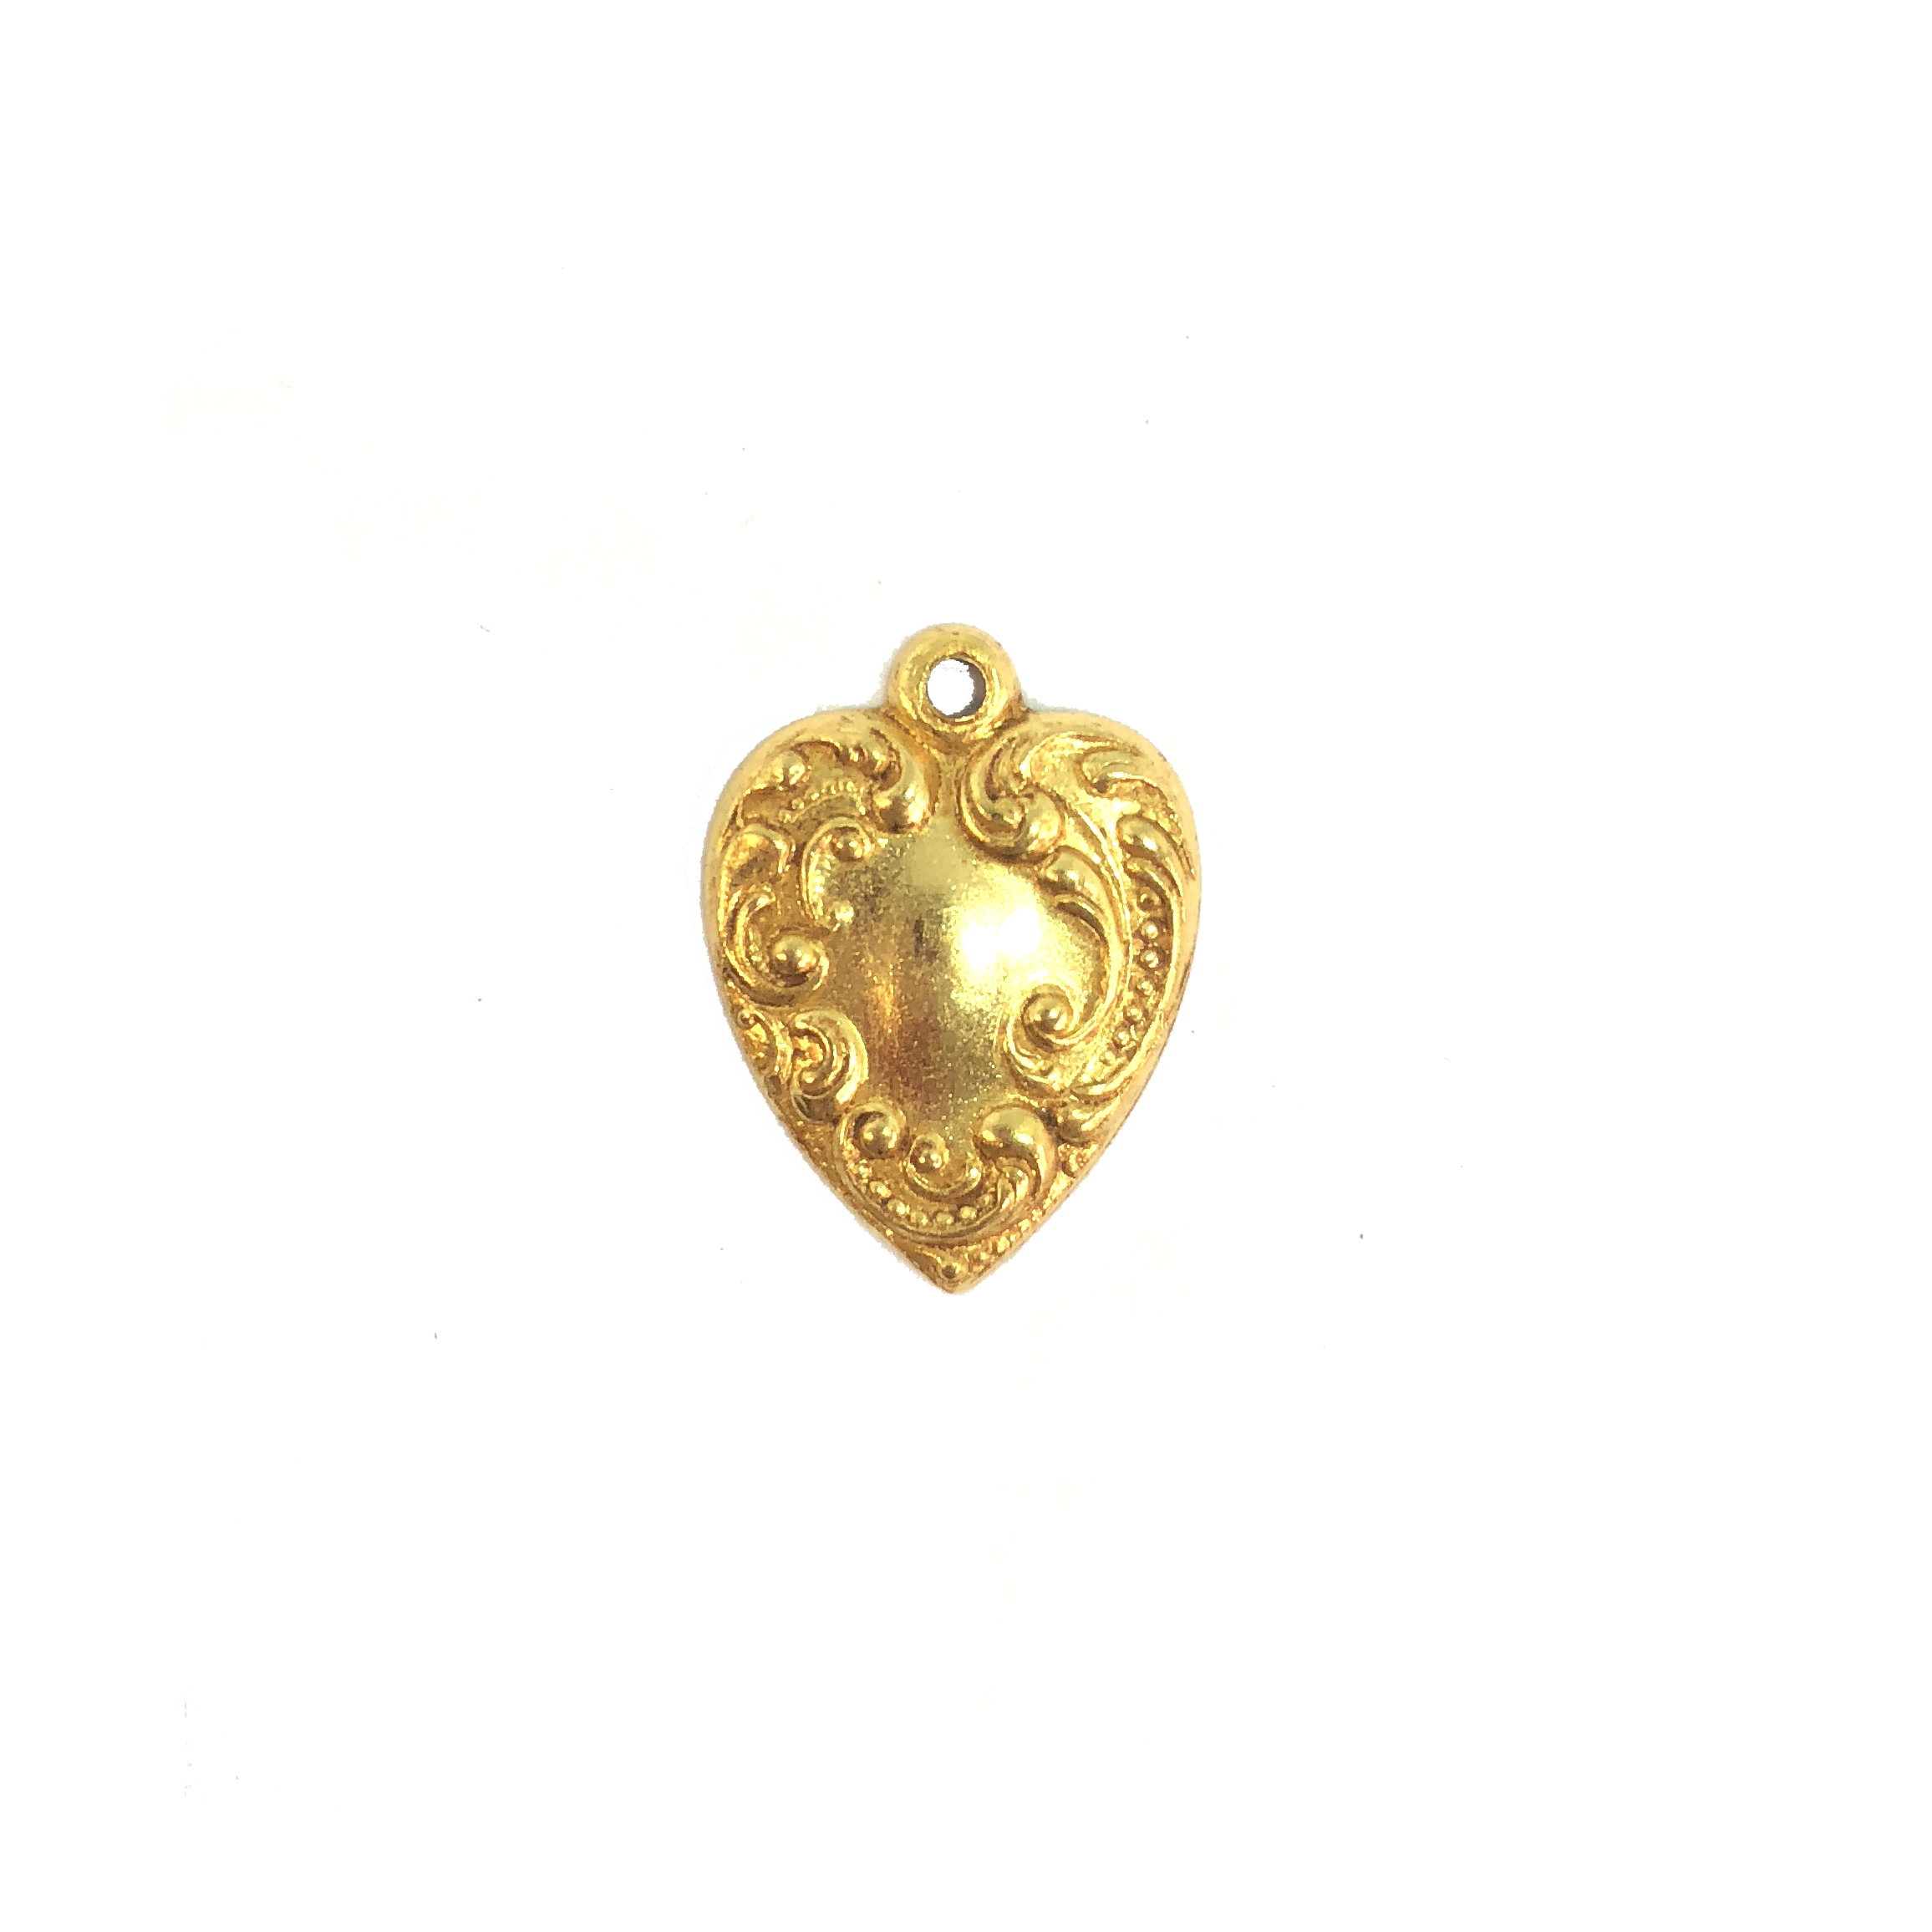 small heart charm, classic gold, hearts, brass stamping, charm, pendant, floral design, 28x24mm, heart charm, us made, gold, classic gold, brass, gold plated, floral, nickel free, B'sue Boutiques, vintage supplies, leafy heart, 08472